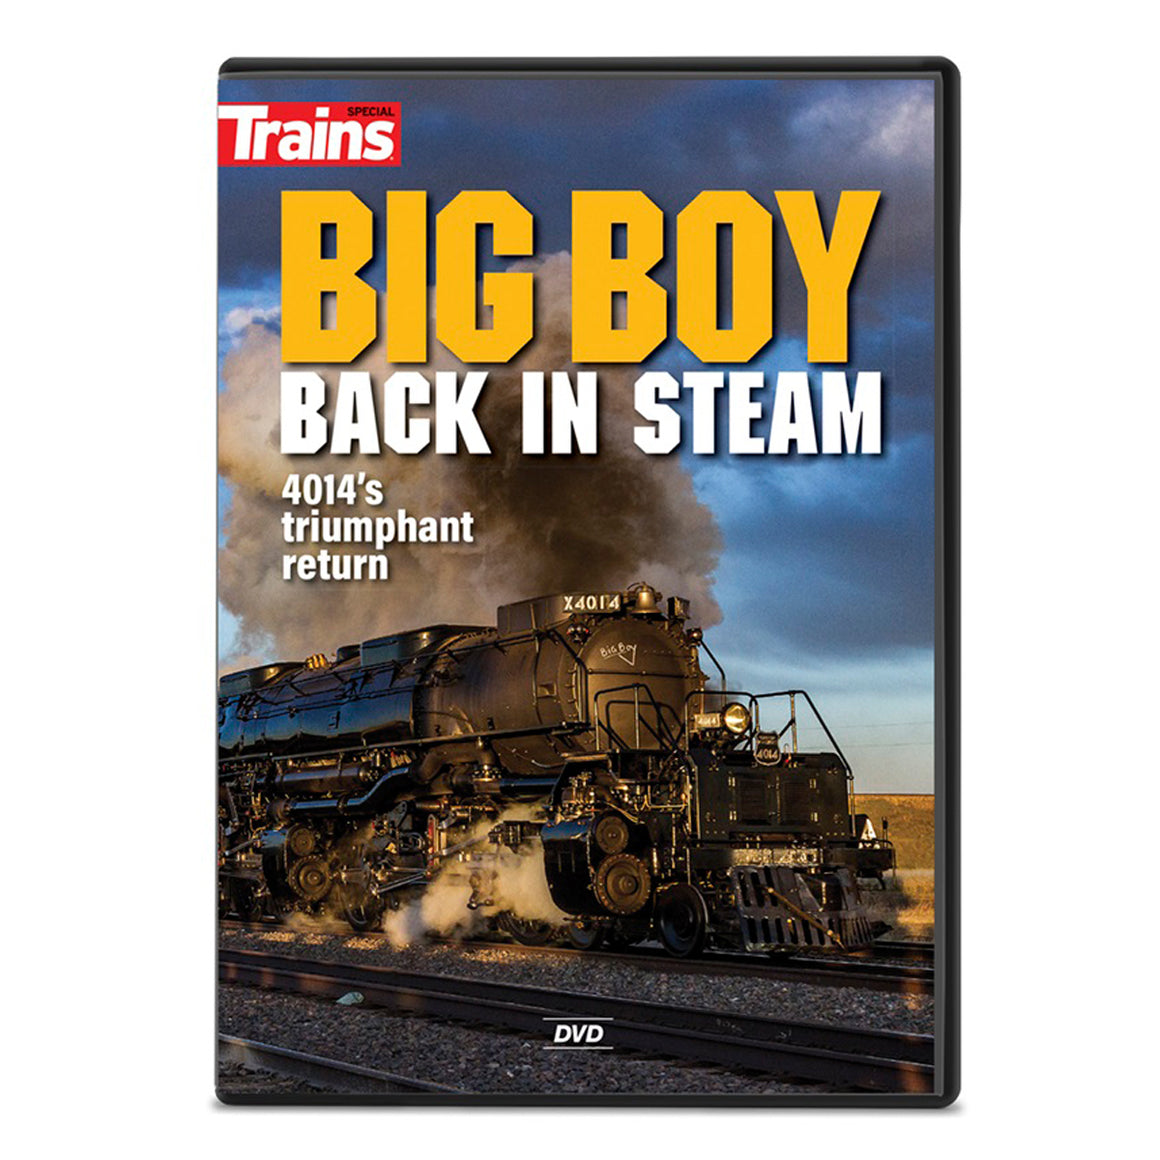 DVD: Big Boy Back in Steam